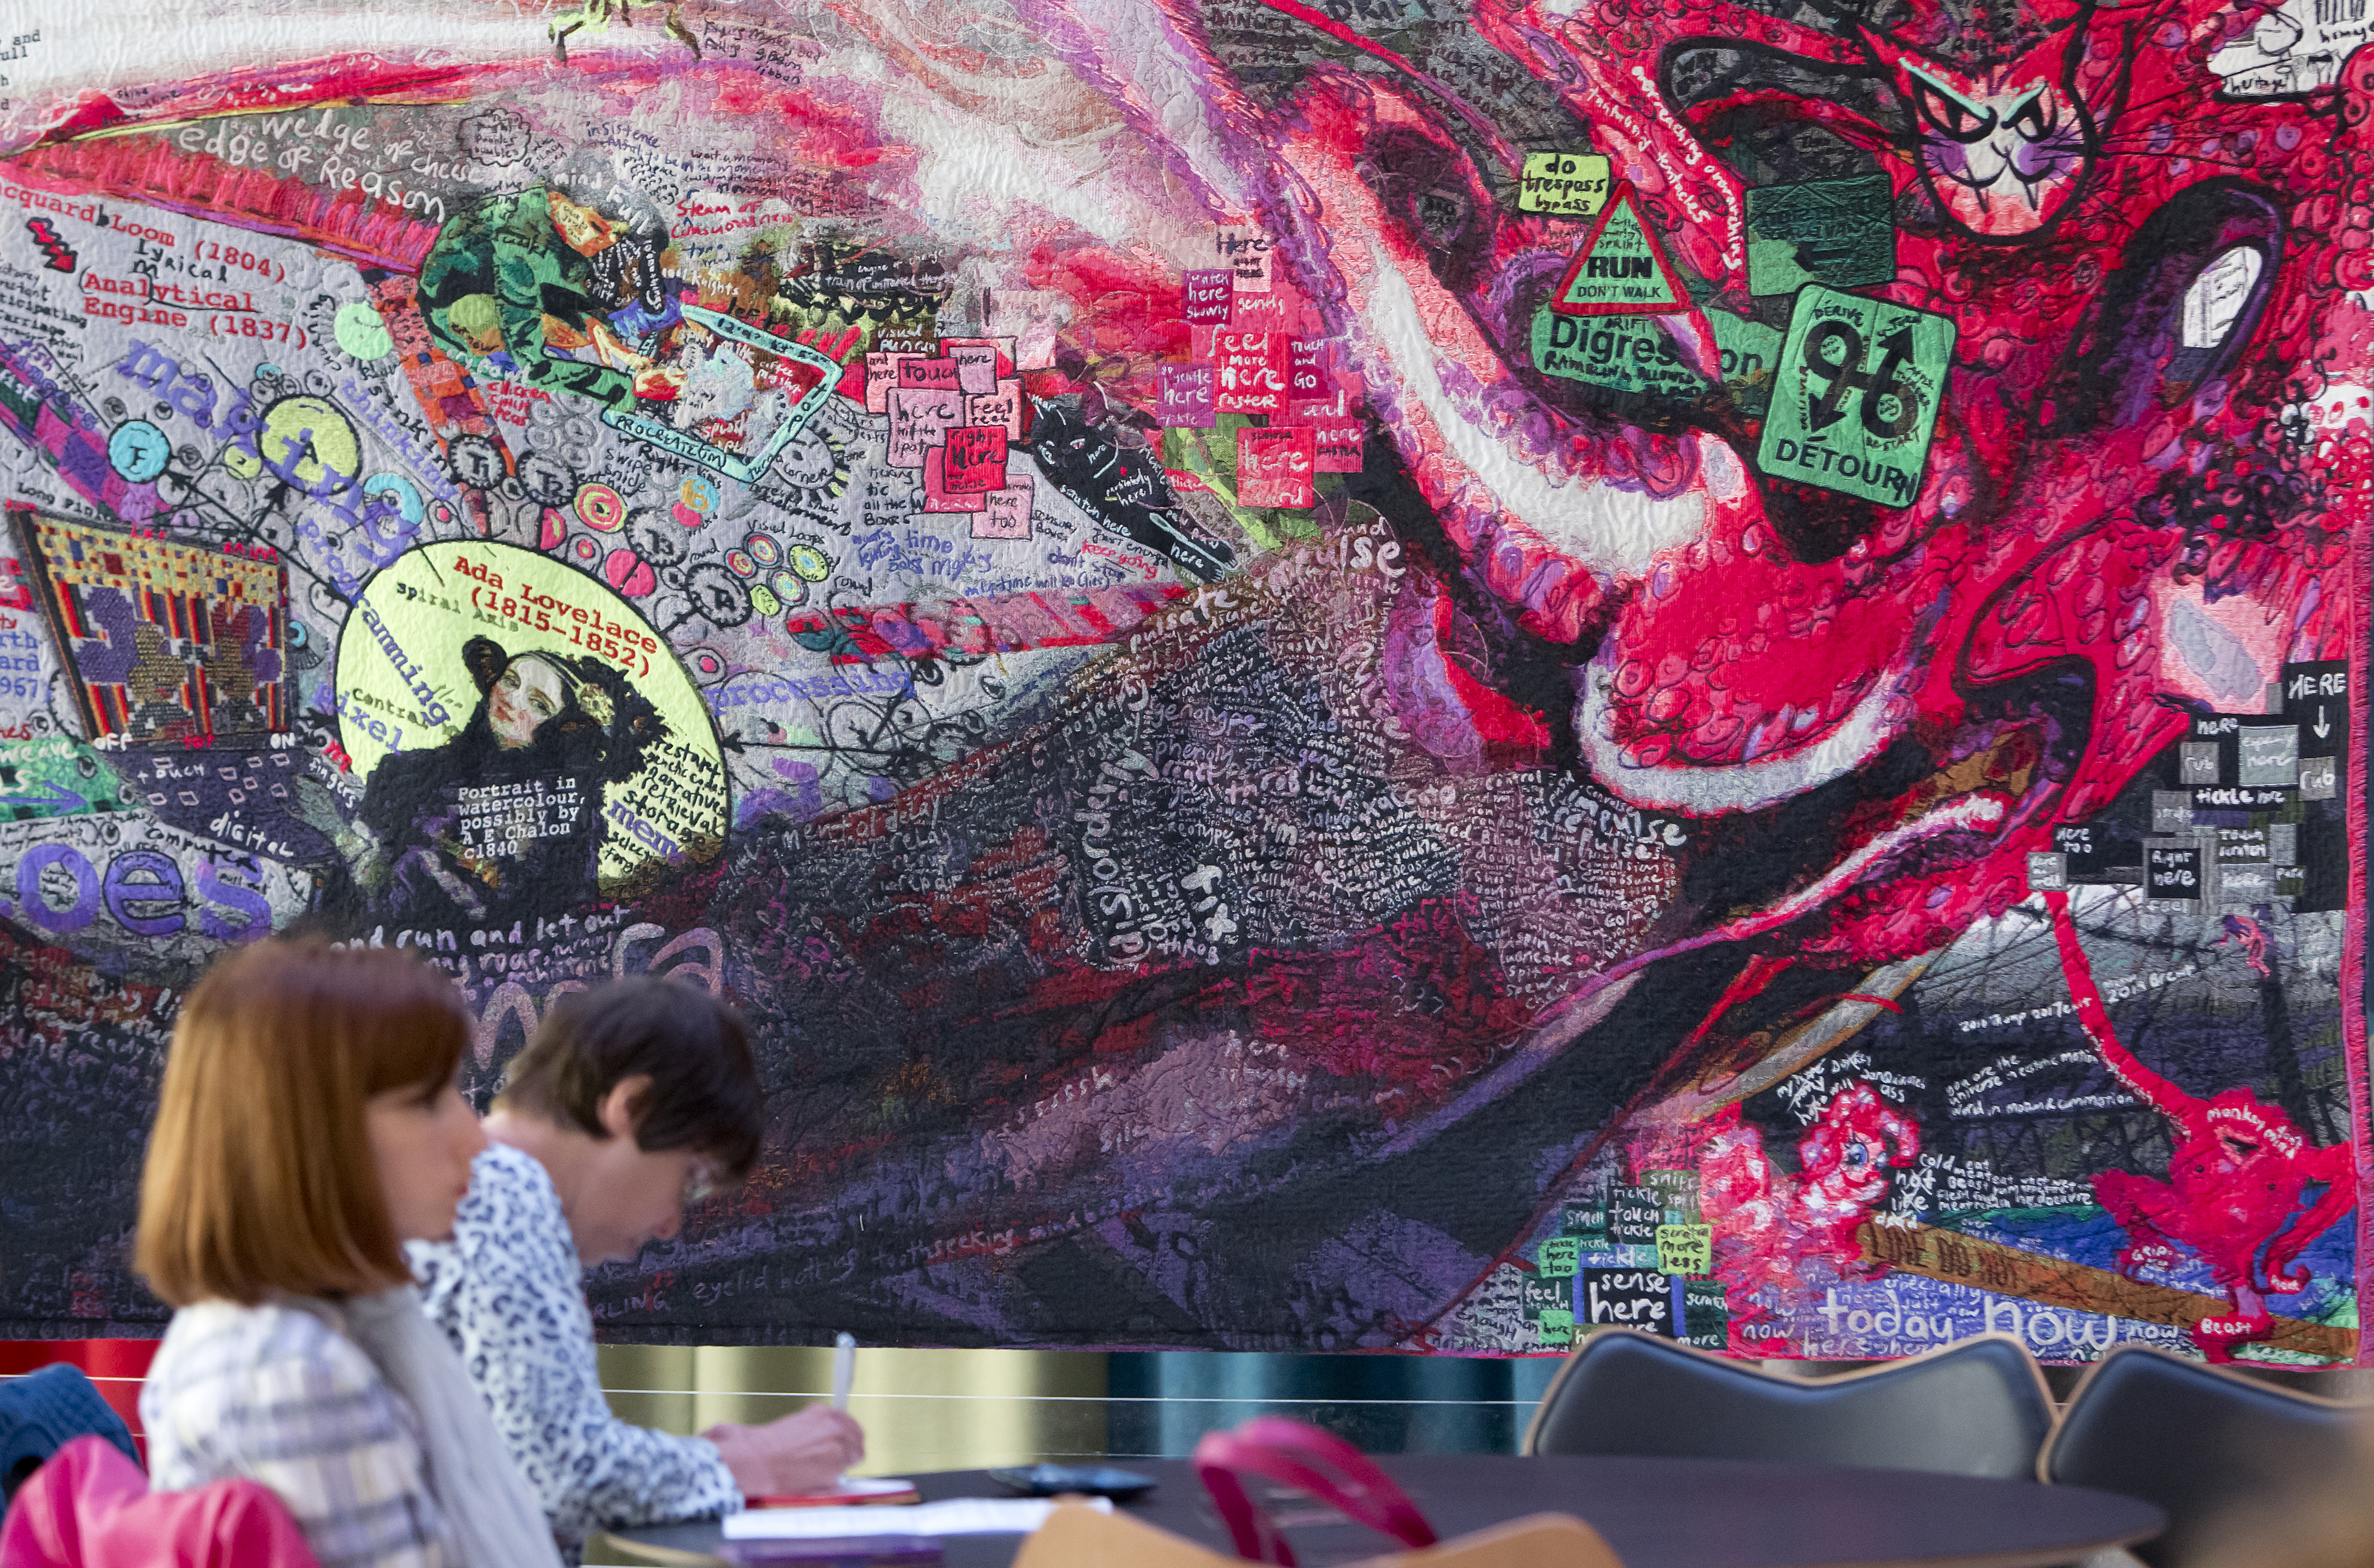 Two women are sat at tables in the foreground against a backdrop of an intricate and convoluted tapestry of collages and vibrant colours, which is intended to illustrate a voyage into the artist's mind.